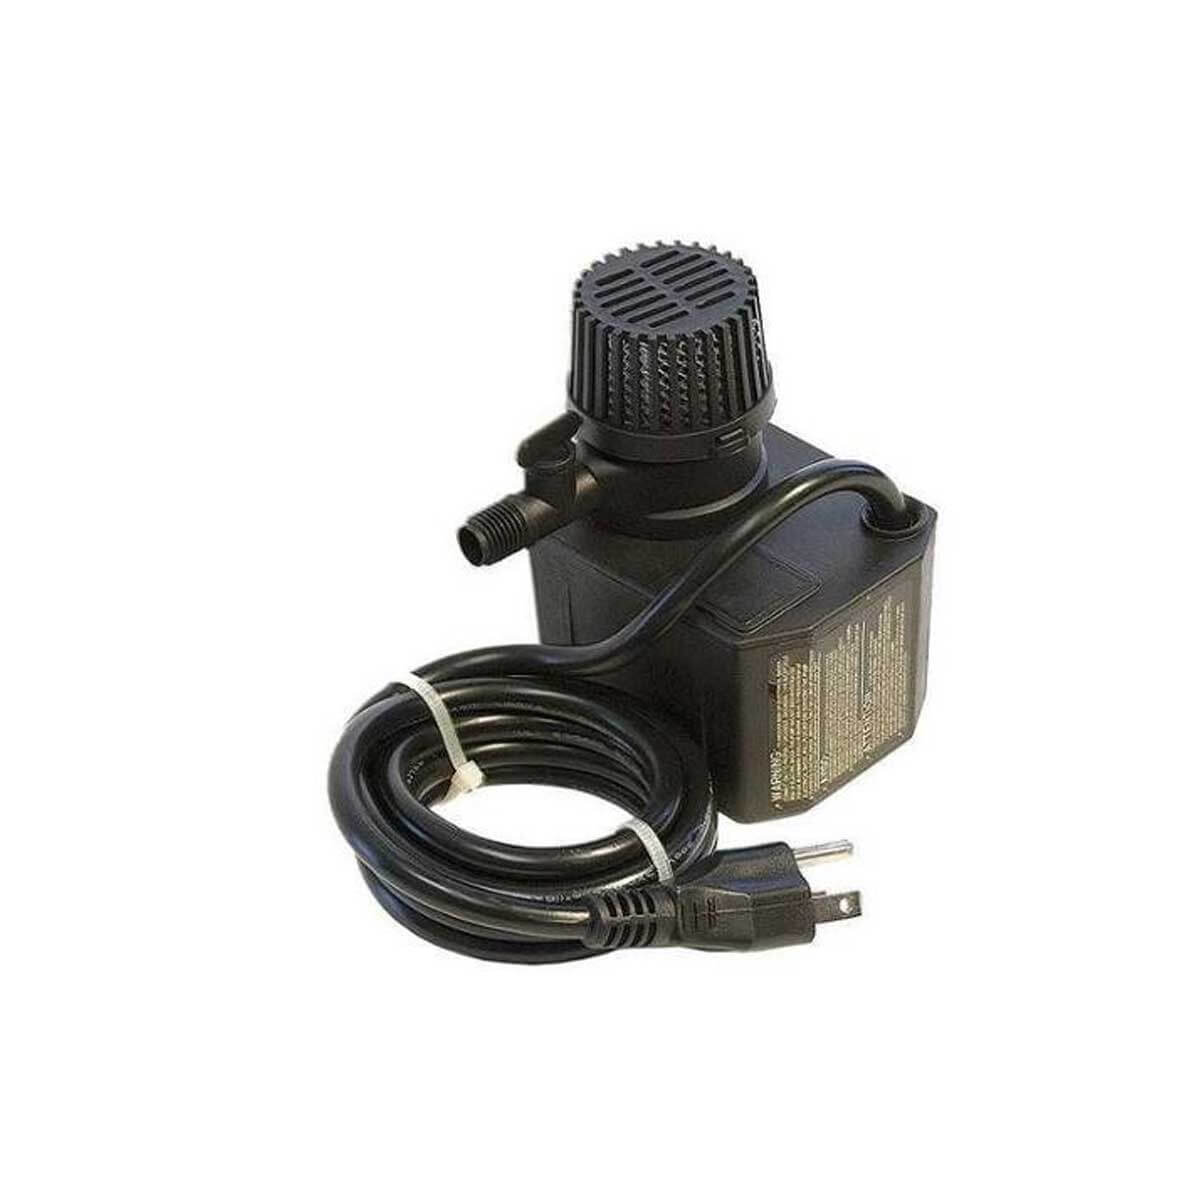 502621302 beckett water pumps 210 gph submersible replacement